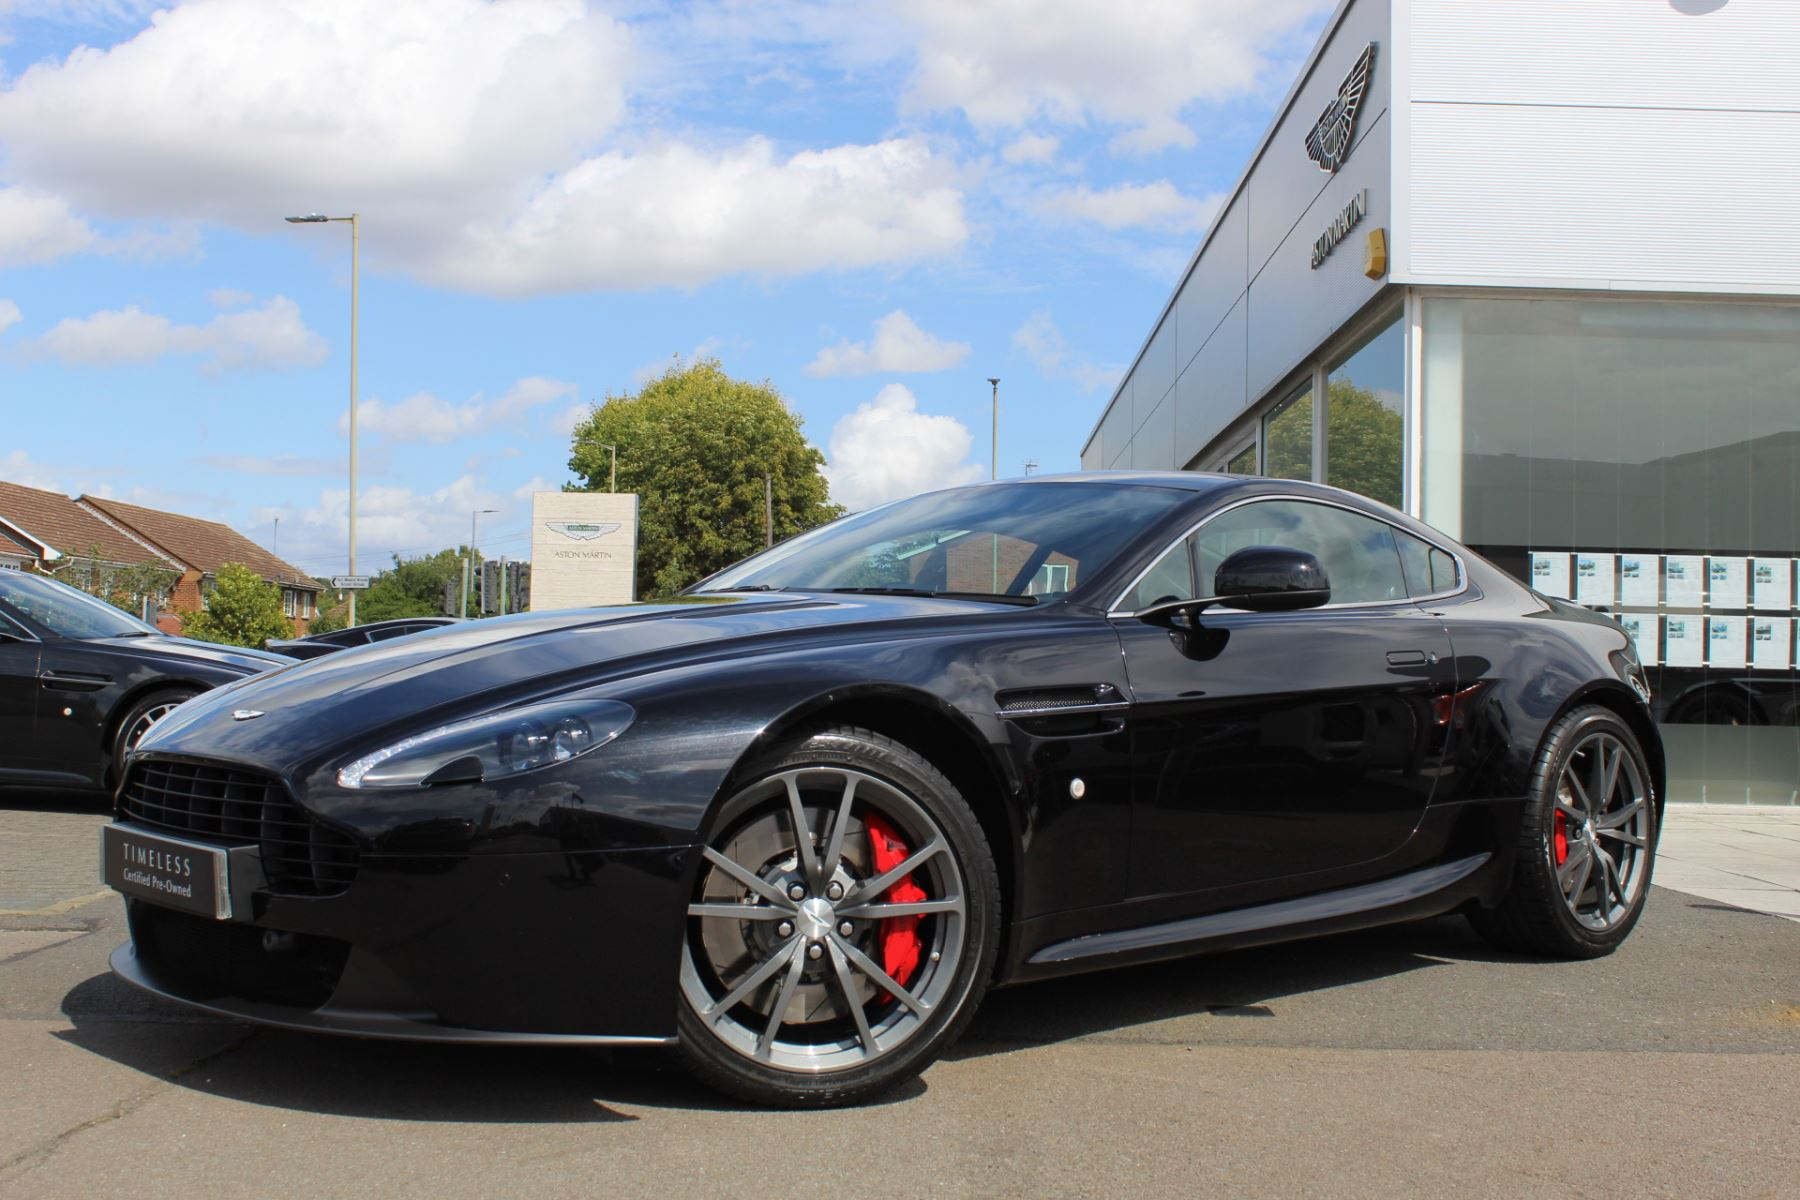 Aston Martin V8 Vantage Coupe 2dr [420] 4.7 3 door Coupe (2015)